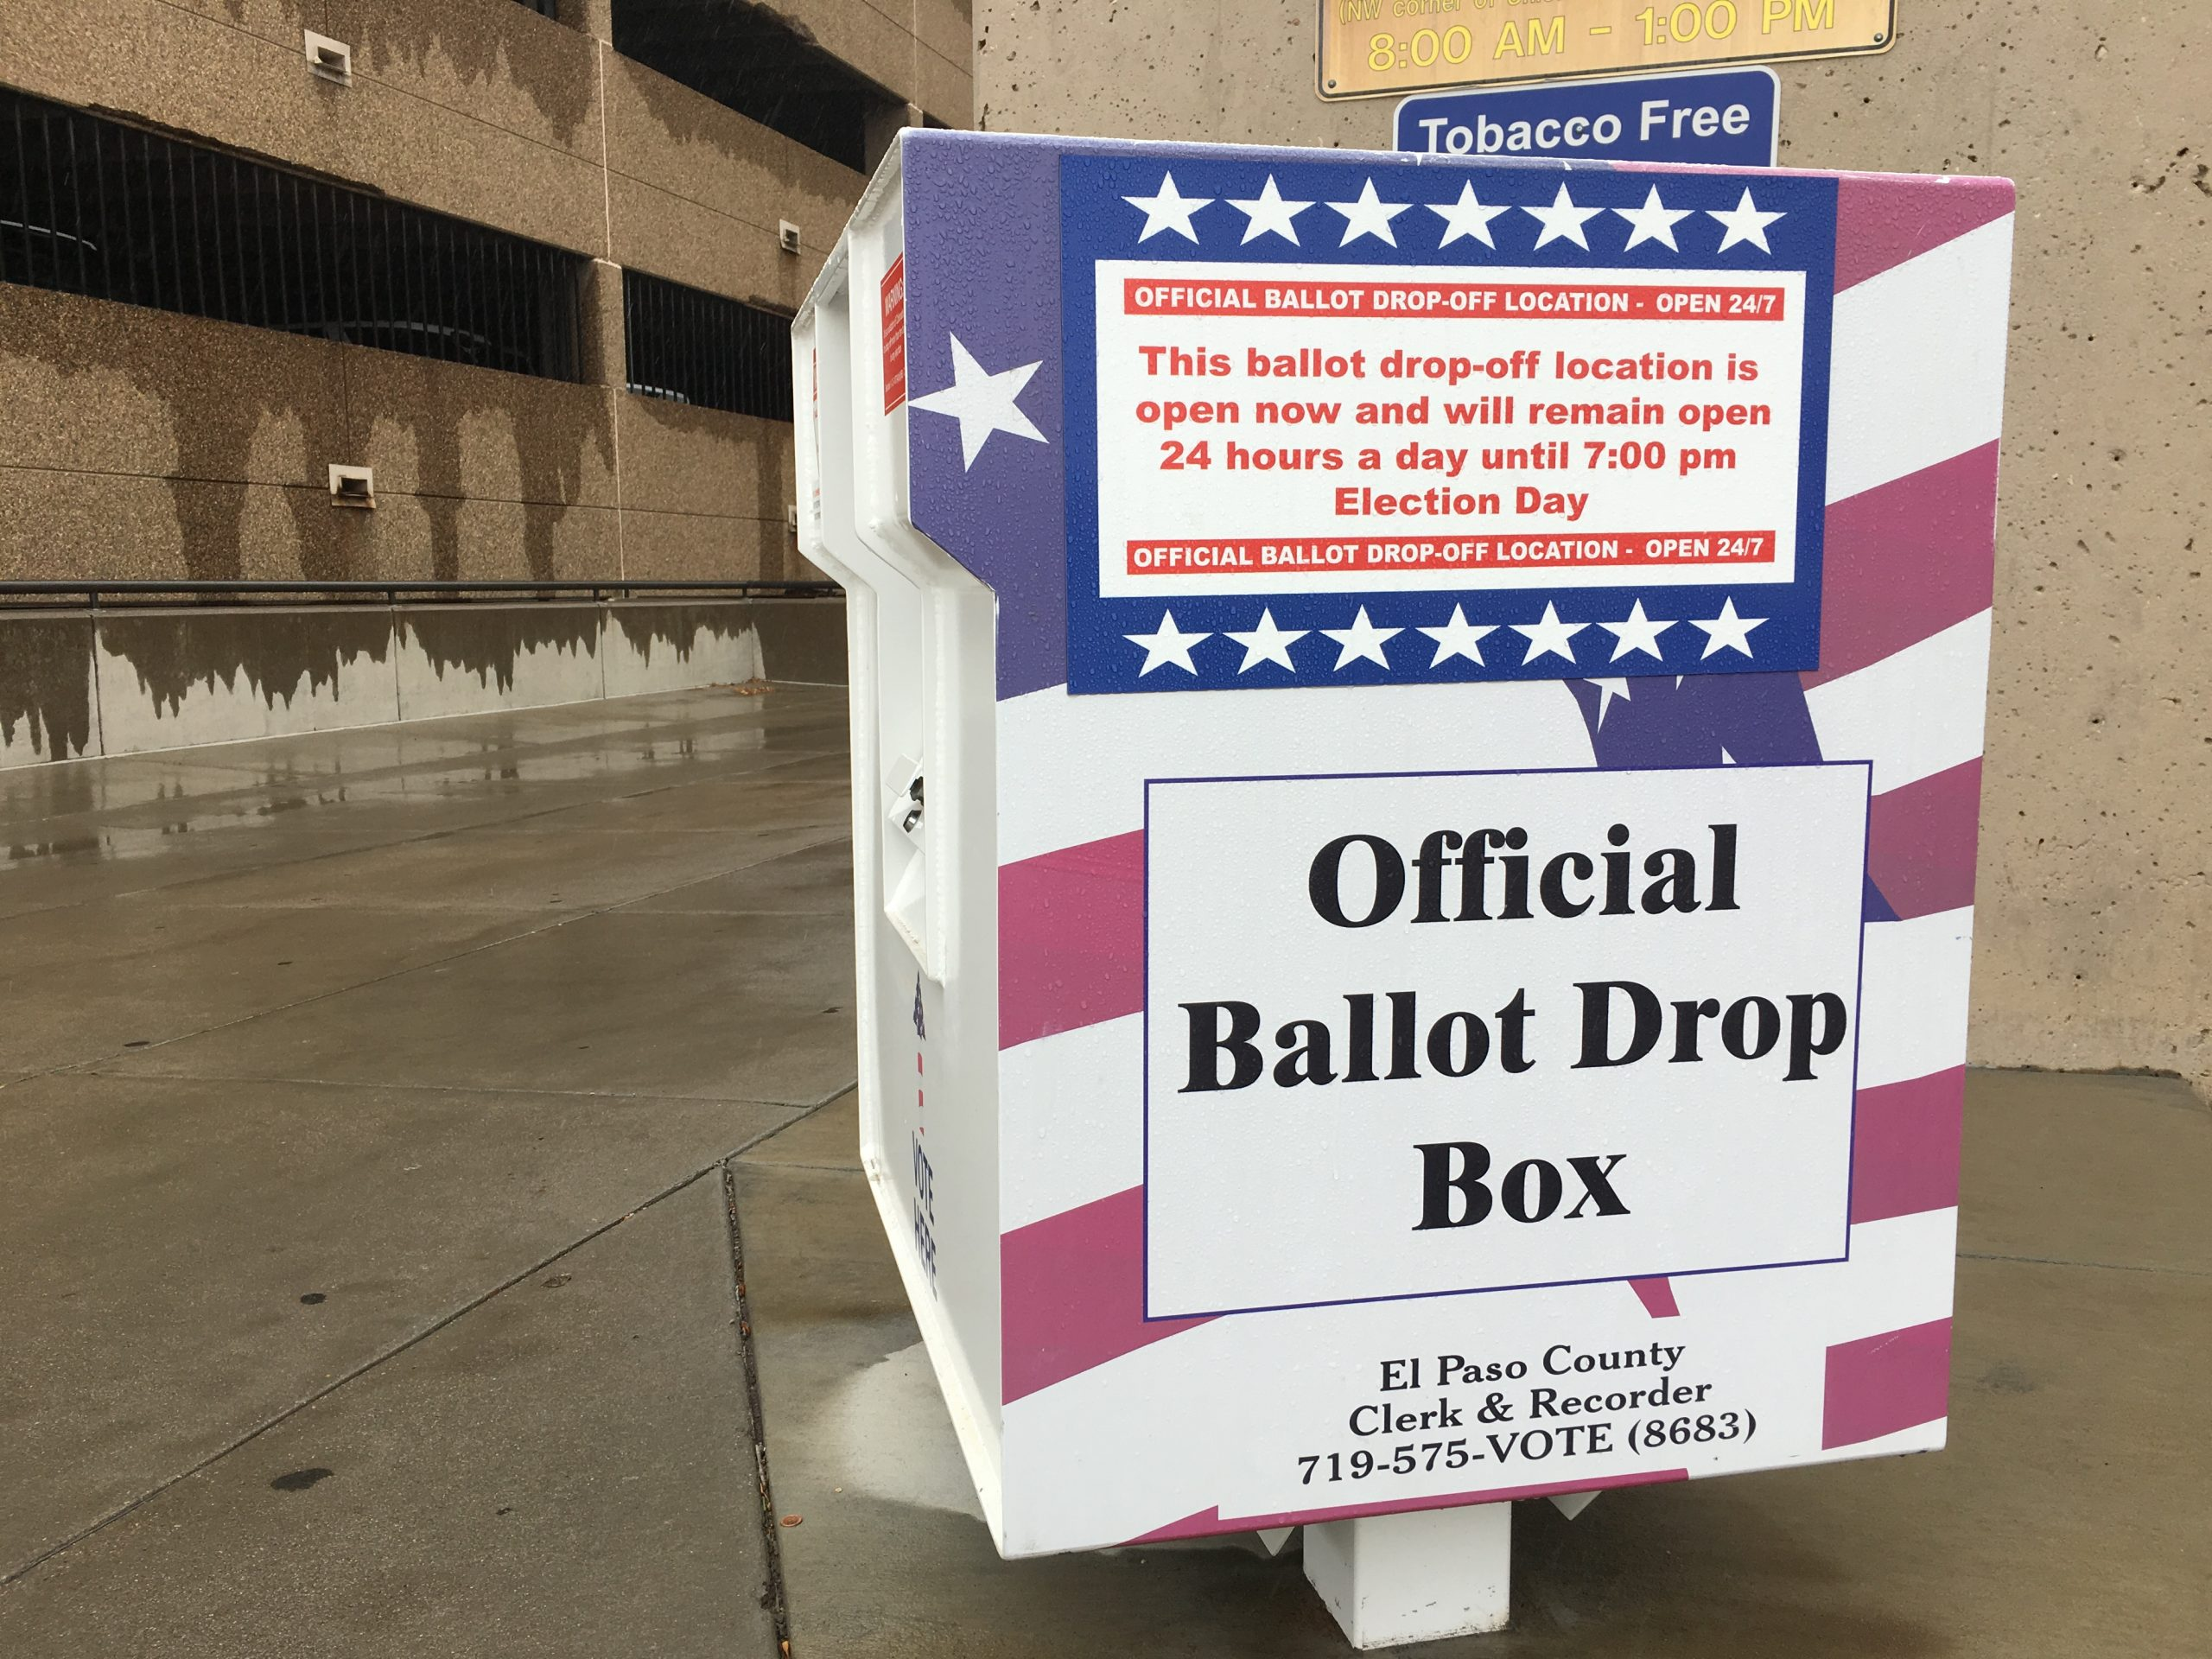 A ballot drop box outside of the El Paso County Clerk and Recorder's office in downtown Colorado Springs.